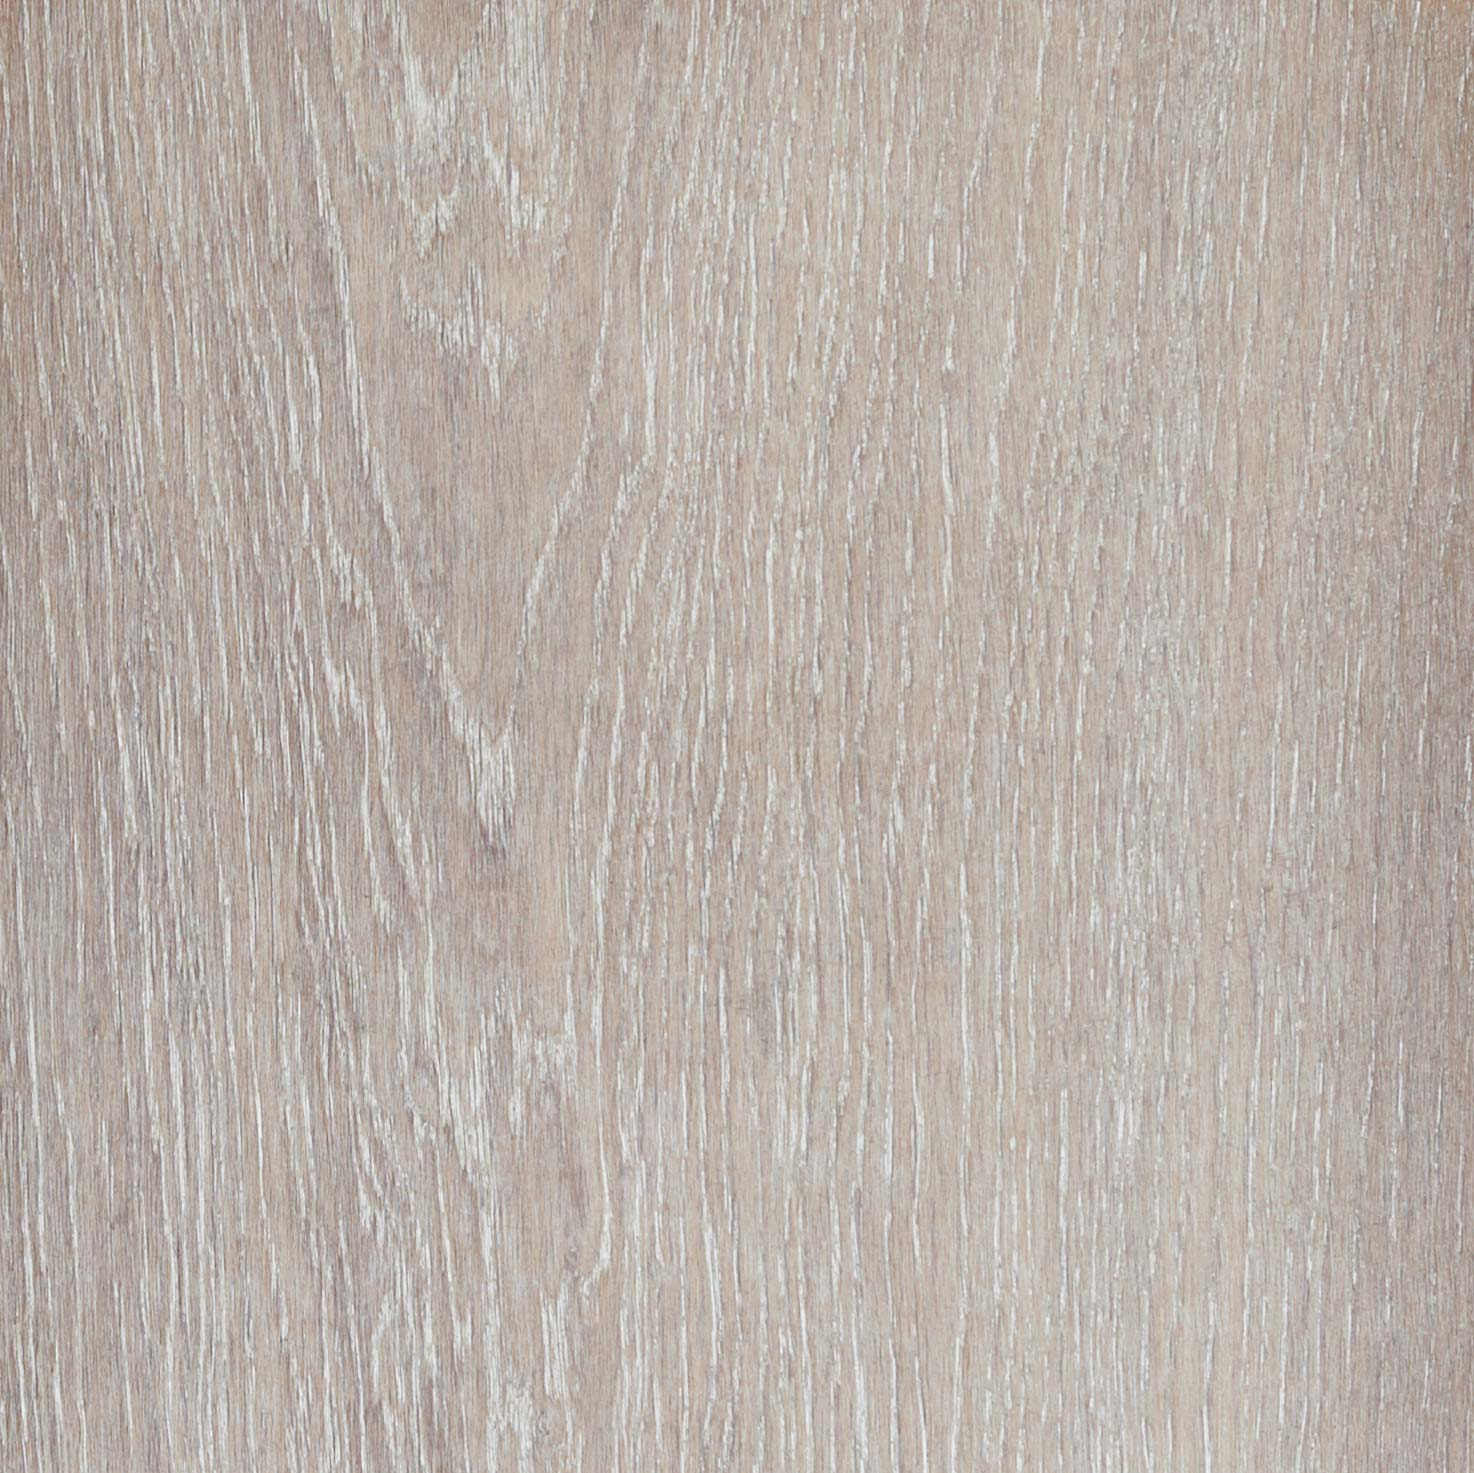 Element7-wide-plank-samples-OysterOak_3_AJ_883_020